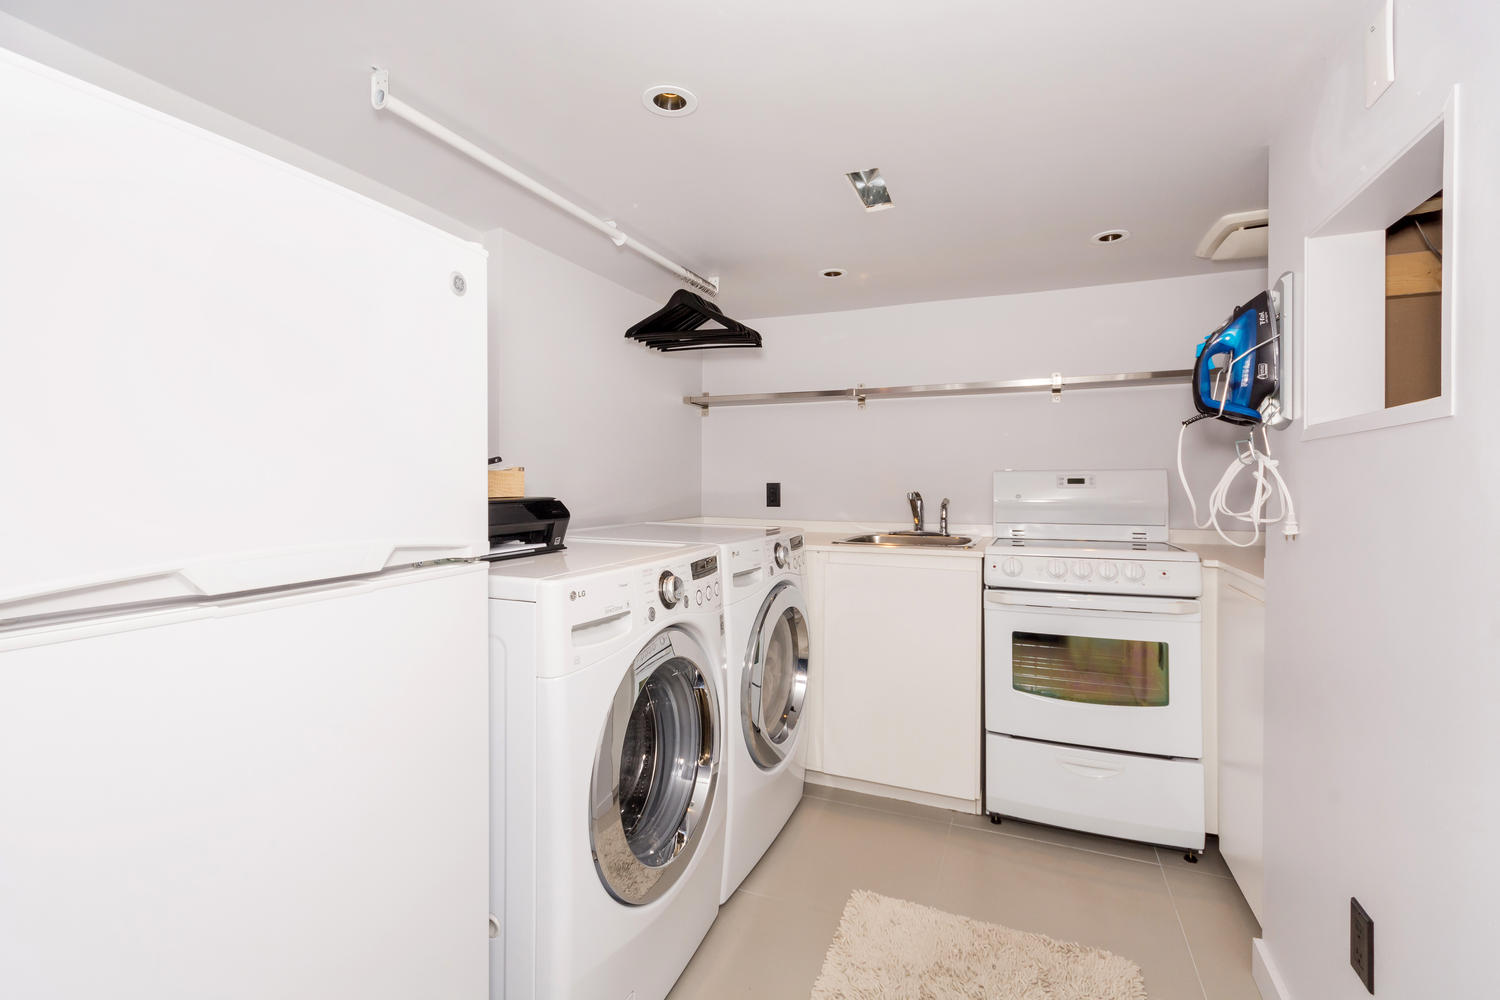 128 Booth Ave Toronto ON M4M-large-027-28-Laundry Room-1500x1000-72dpi.jpg